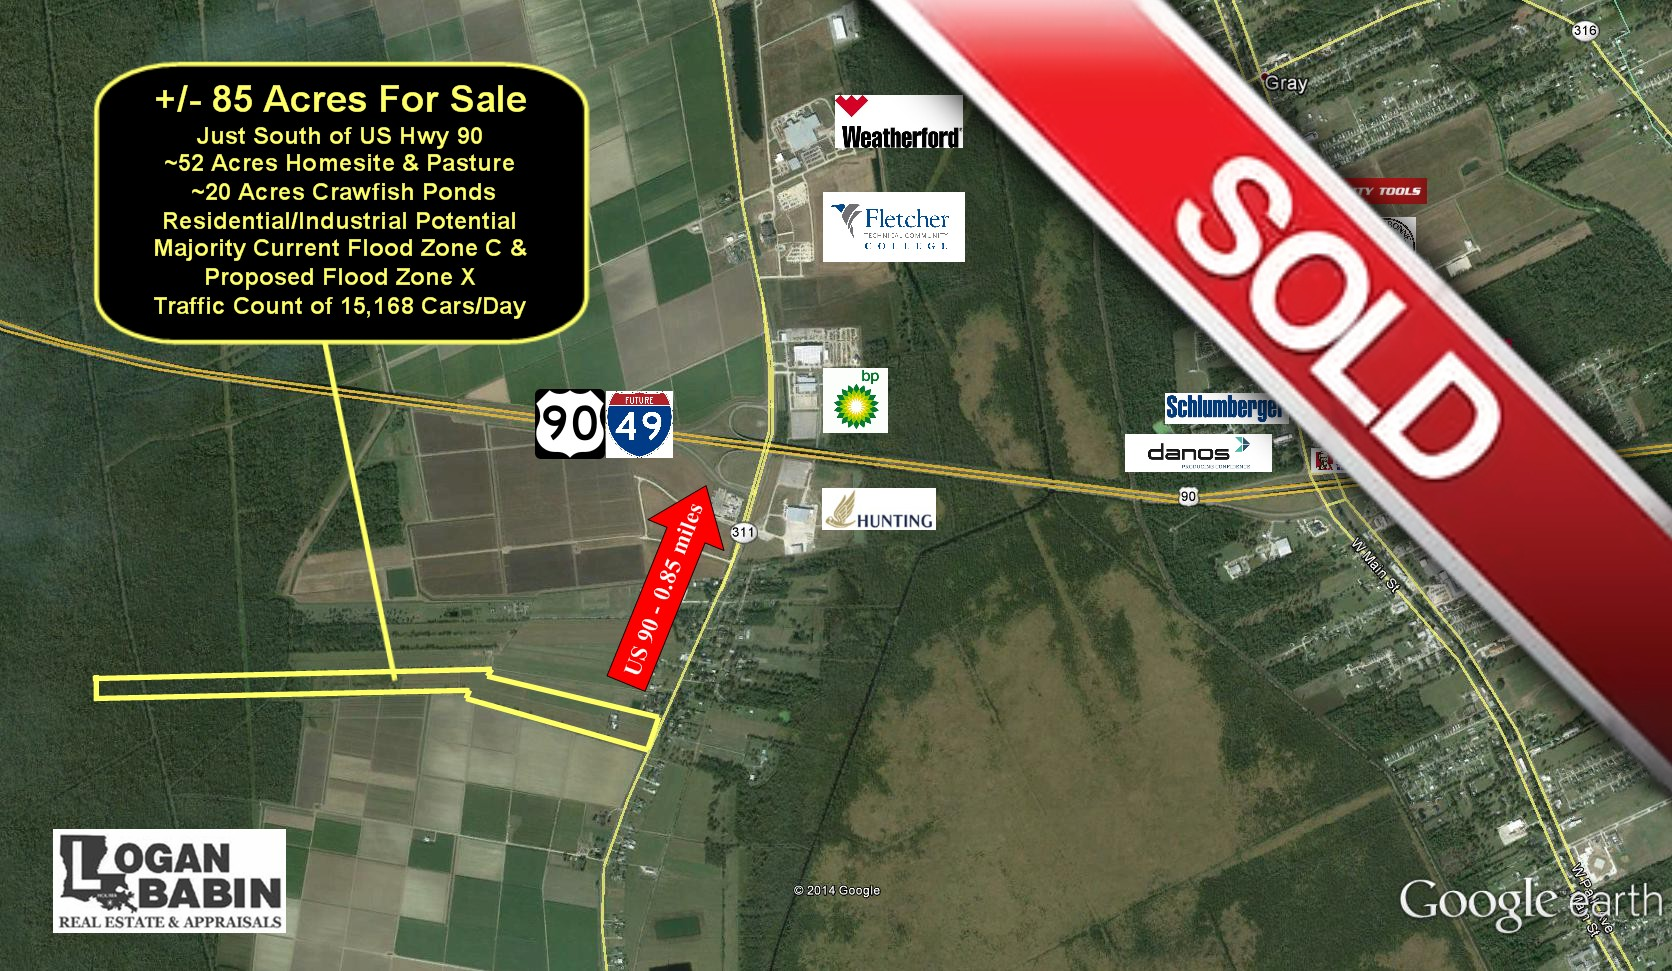 SOLD - Logan Babin Real Estate sells Hwy 311 Acreage - Logan